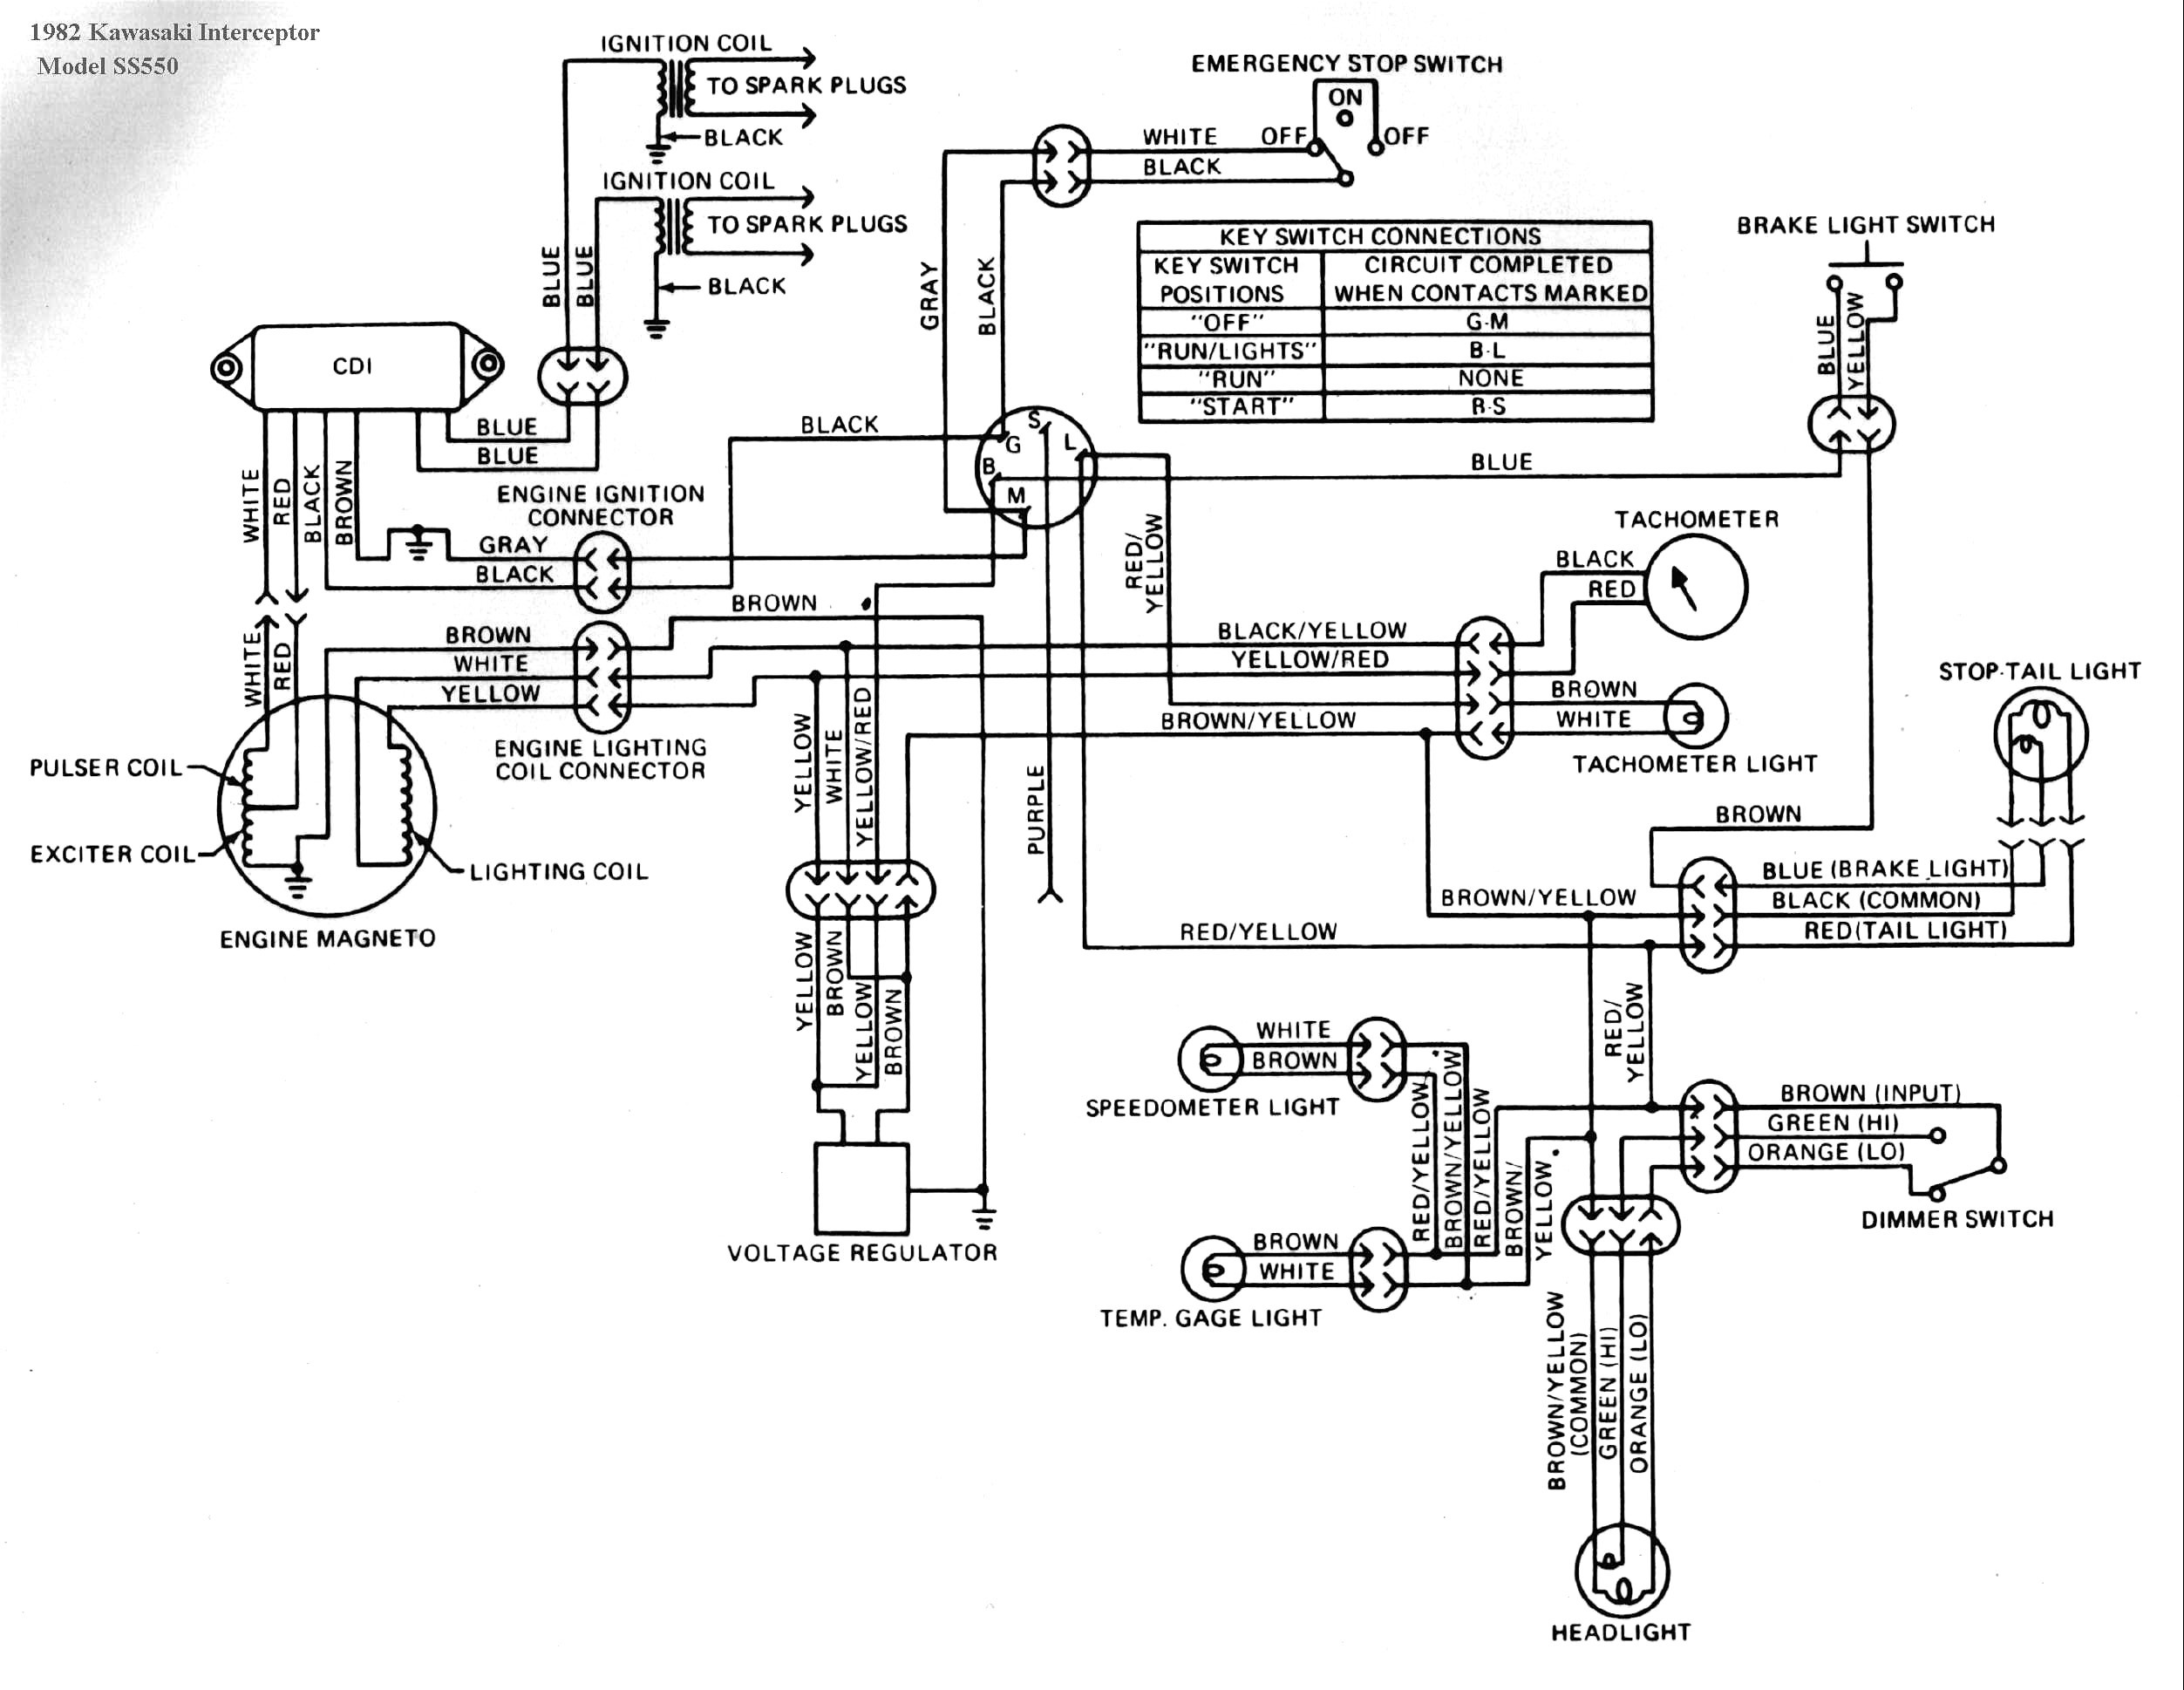 colored wiring diagram for 1995 zx600d ninja